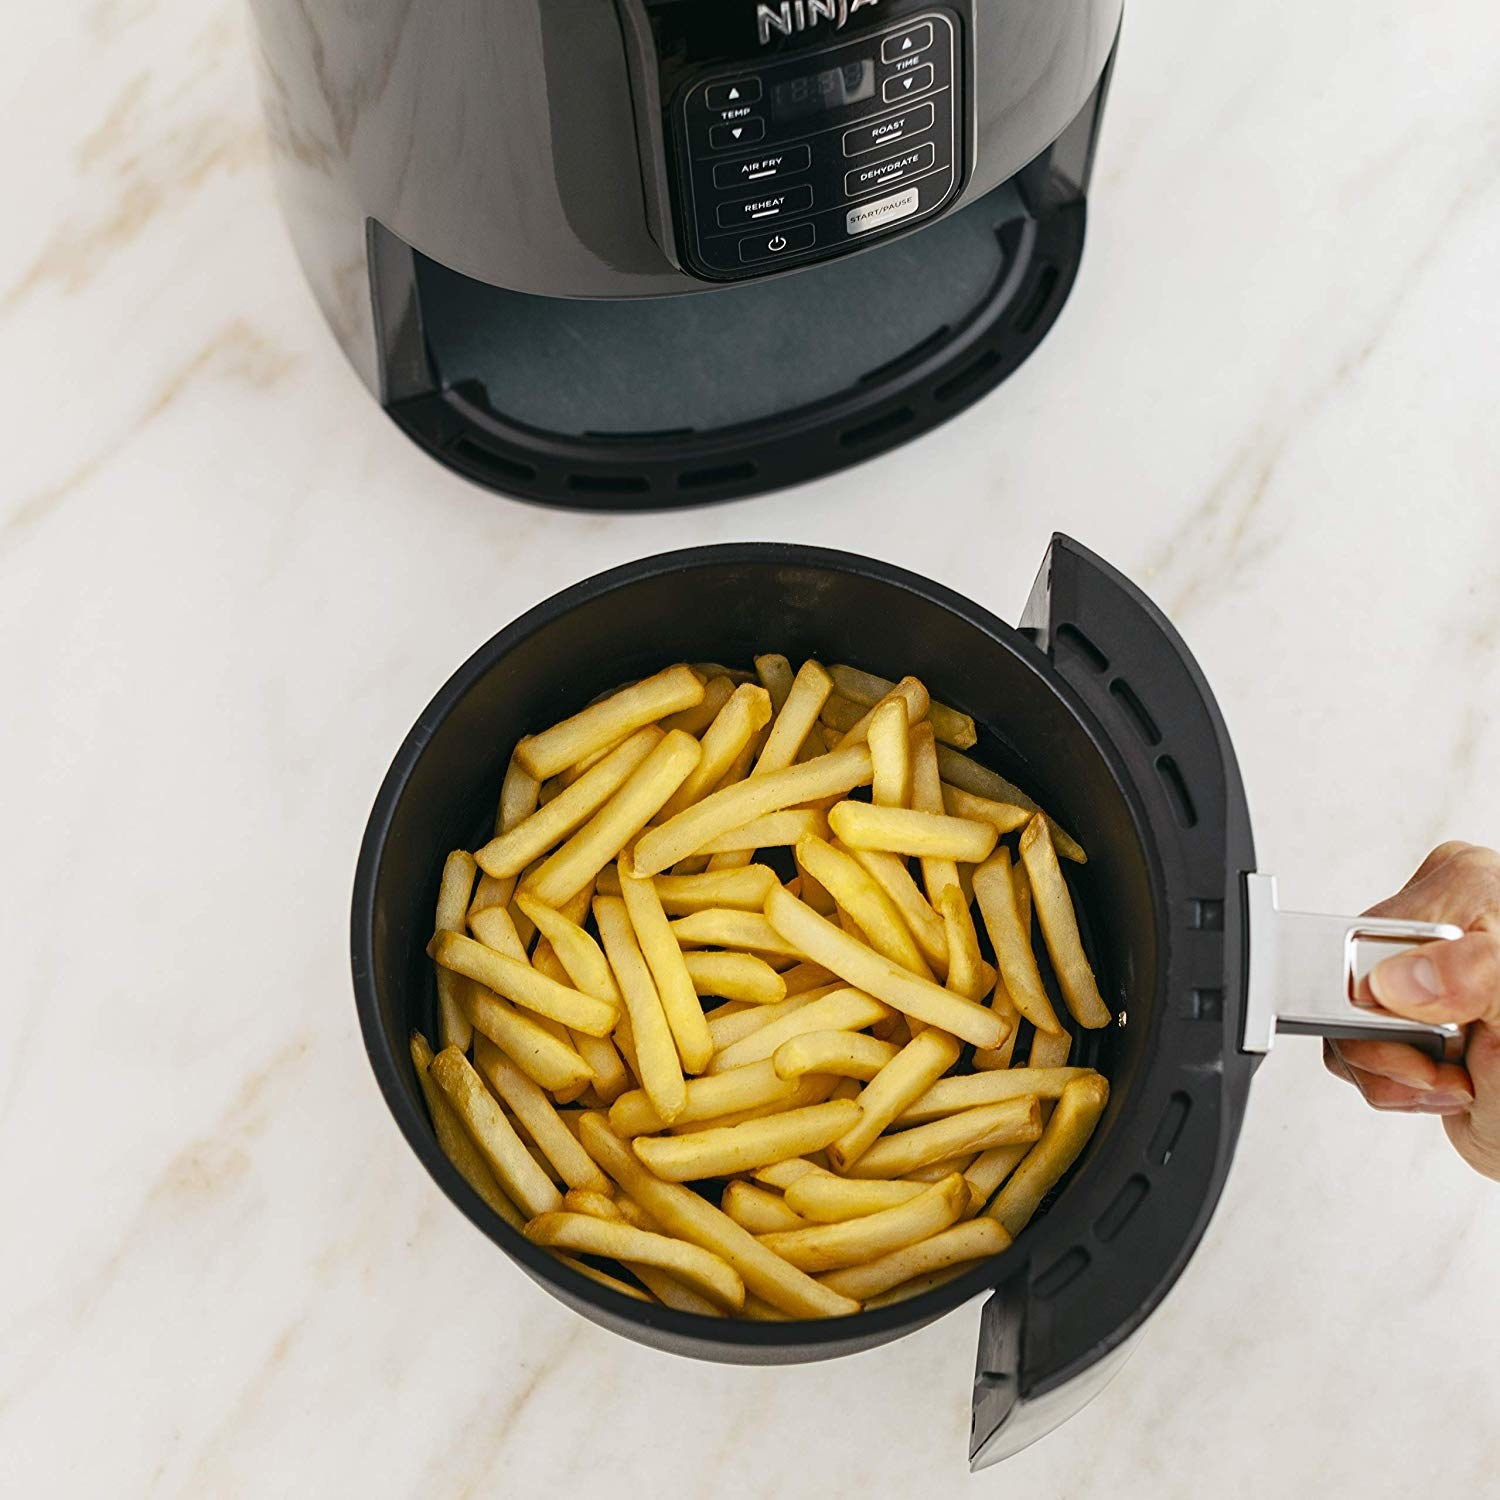 "This can help you satisfy your fried food cravings at home, except by using air circulation and a TINY amount of oil!Promising review: ""So far I love it and more importantly my husband does. At first he laughed at yet another kitchen appliance. But now he's using it daily and ready to retire his deep fryer. This is so much cleaner, healthier, and faster. I told him I need to purchase another one for his and her air fryers. 😊"" —AlliecatkatieGet it from Amazon for $99."